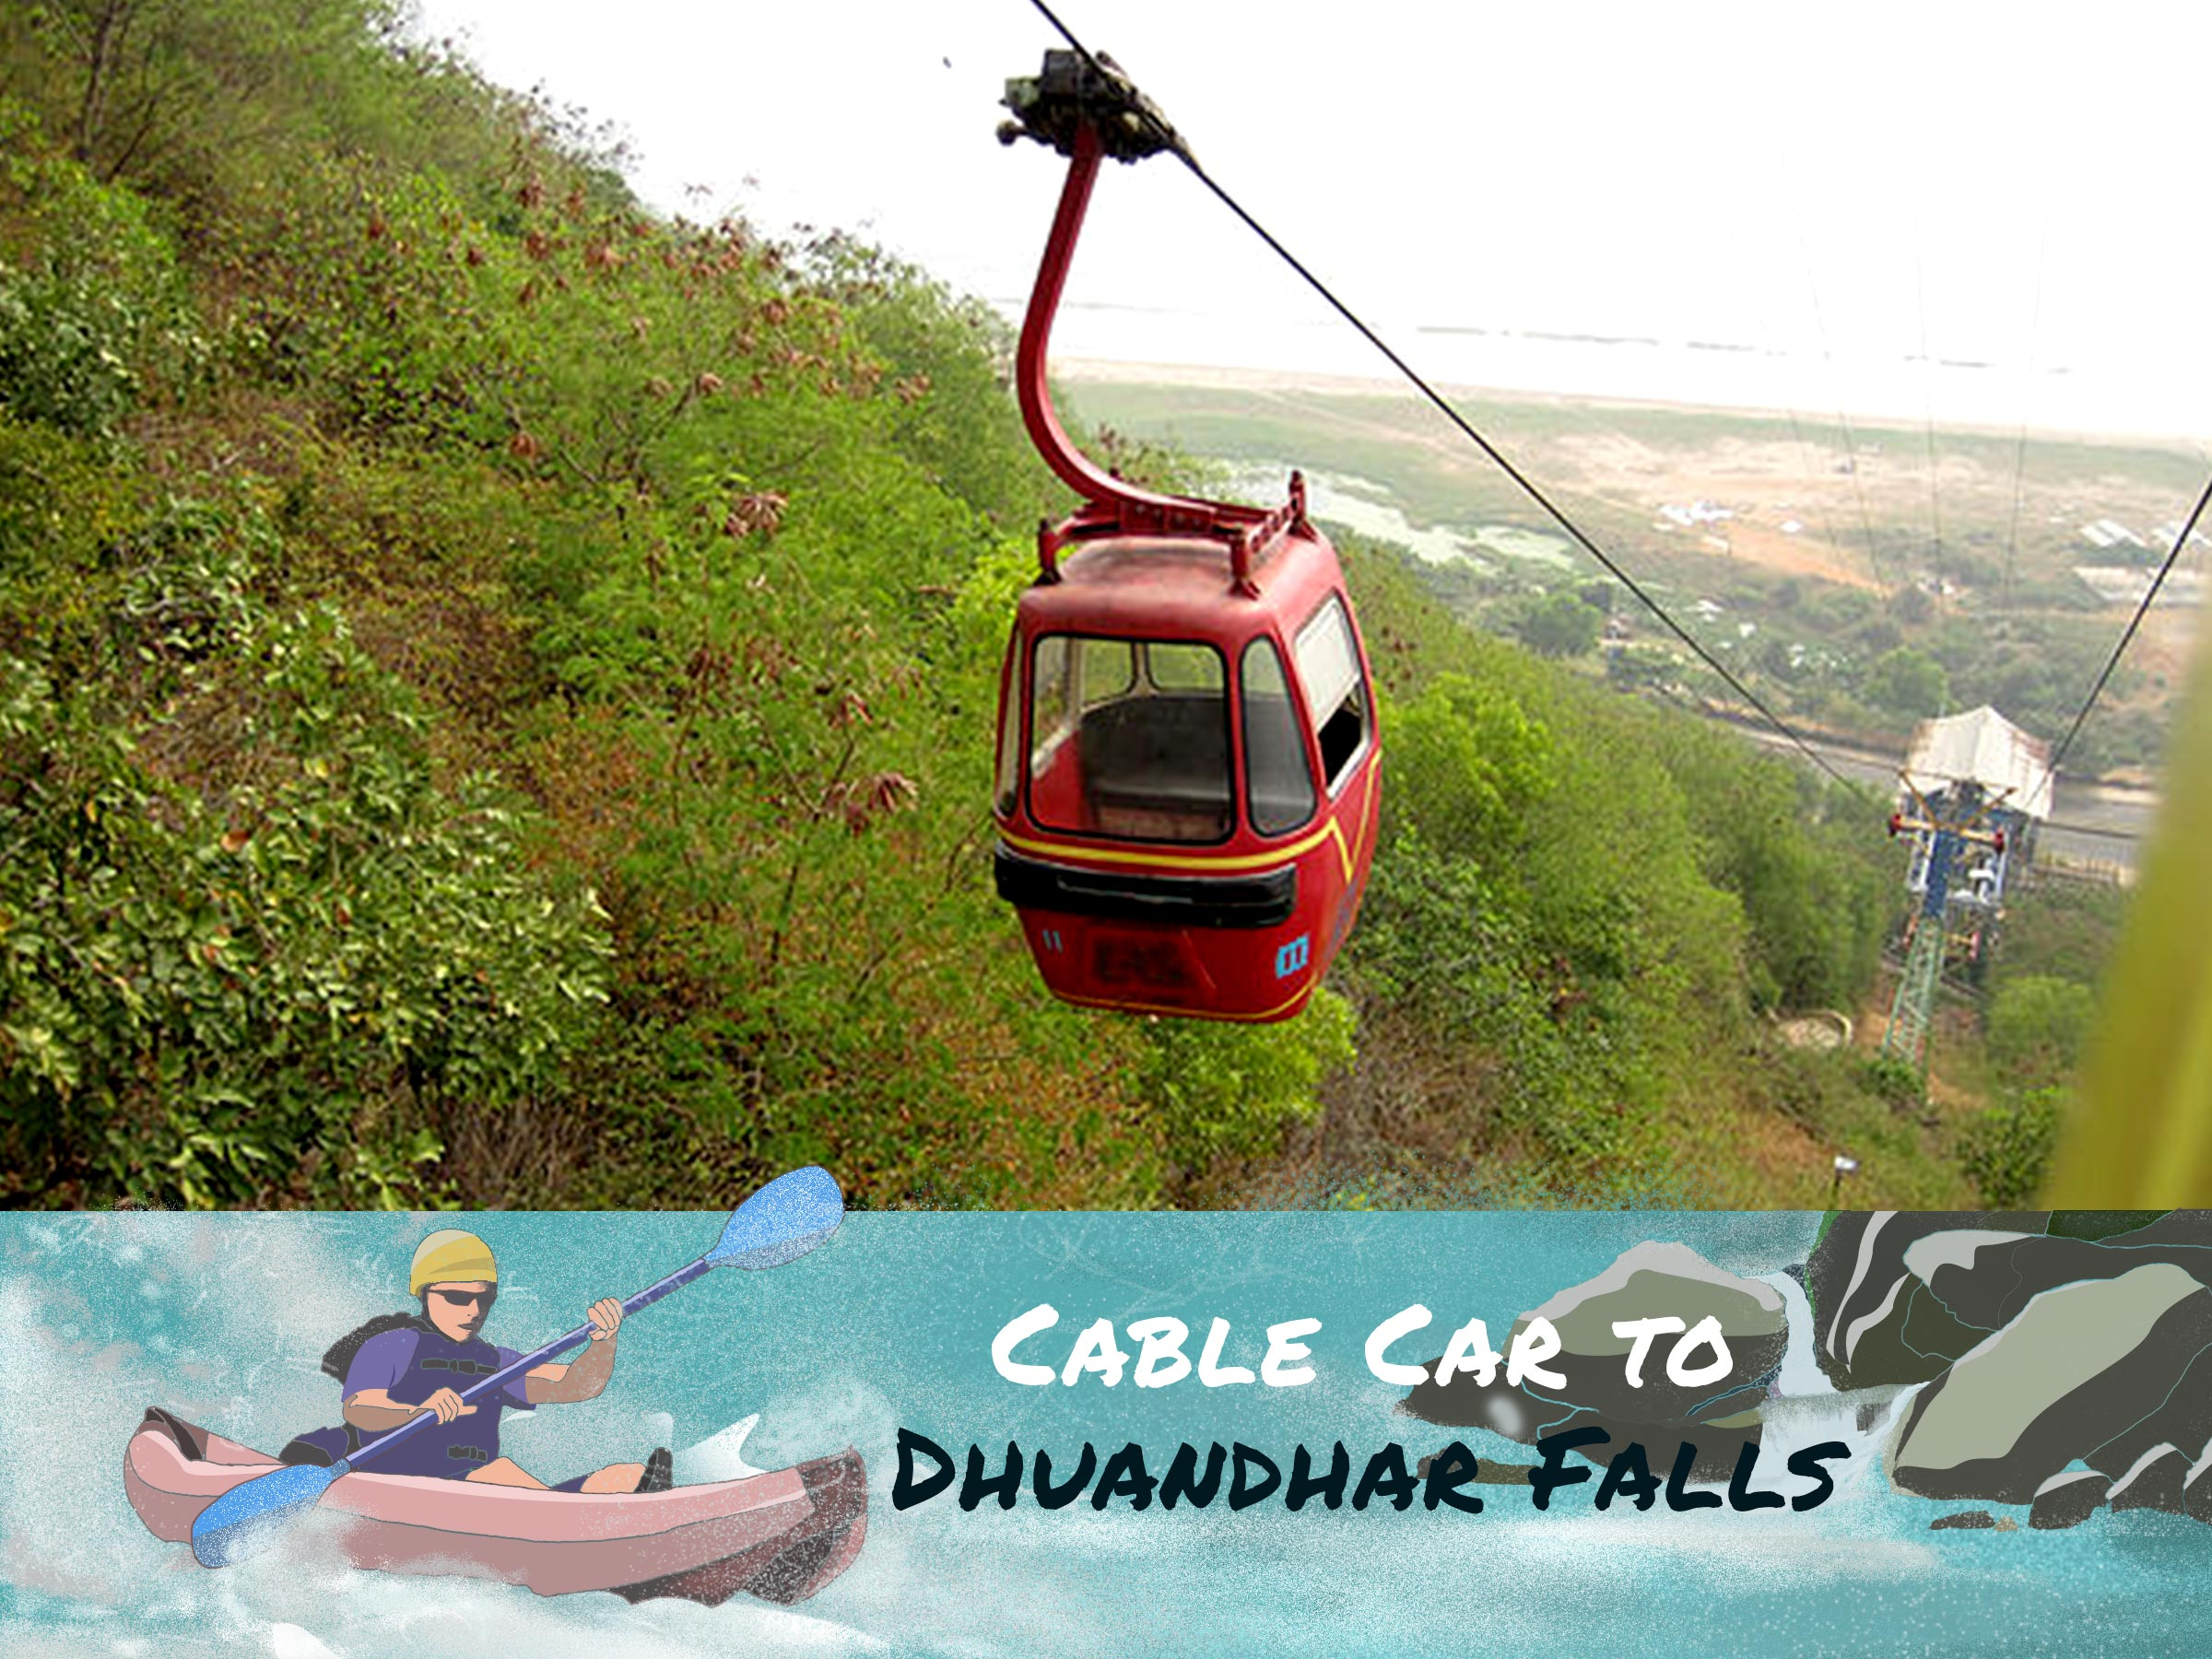 Cable car dhuandar falls